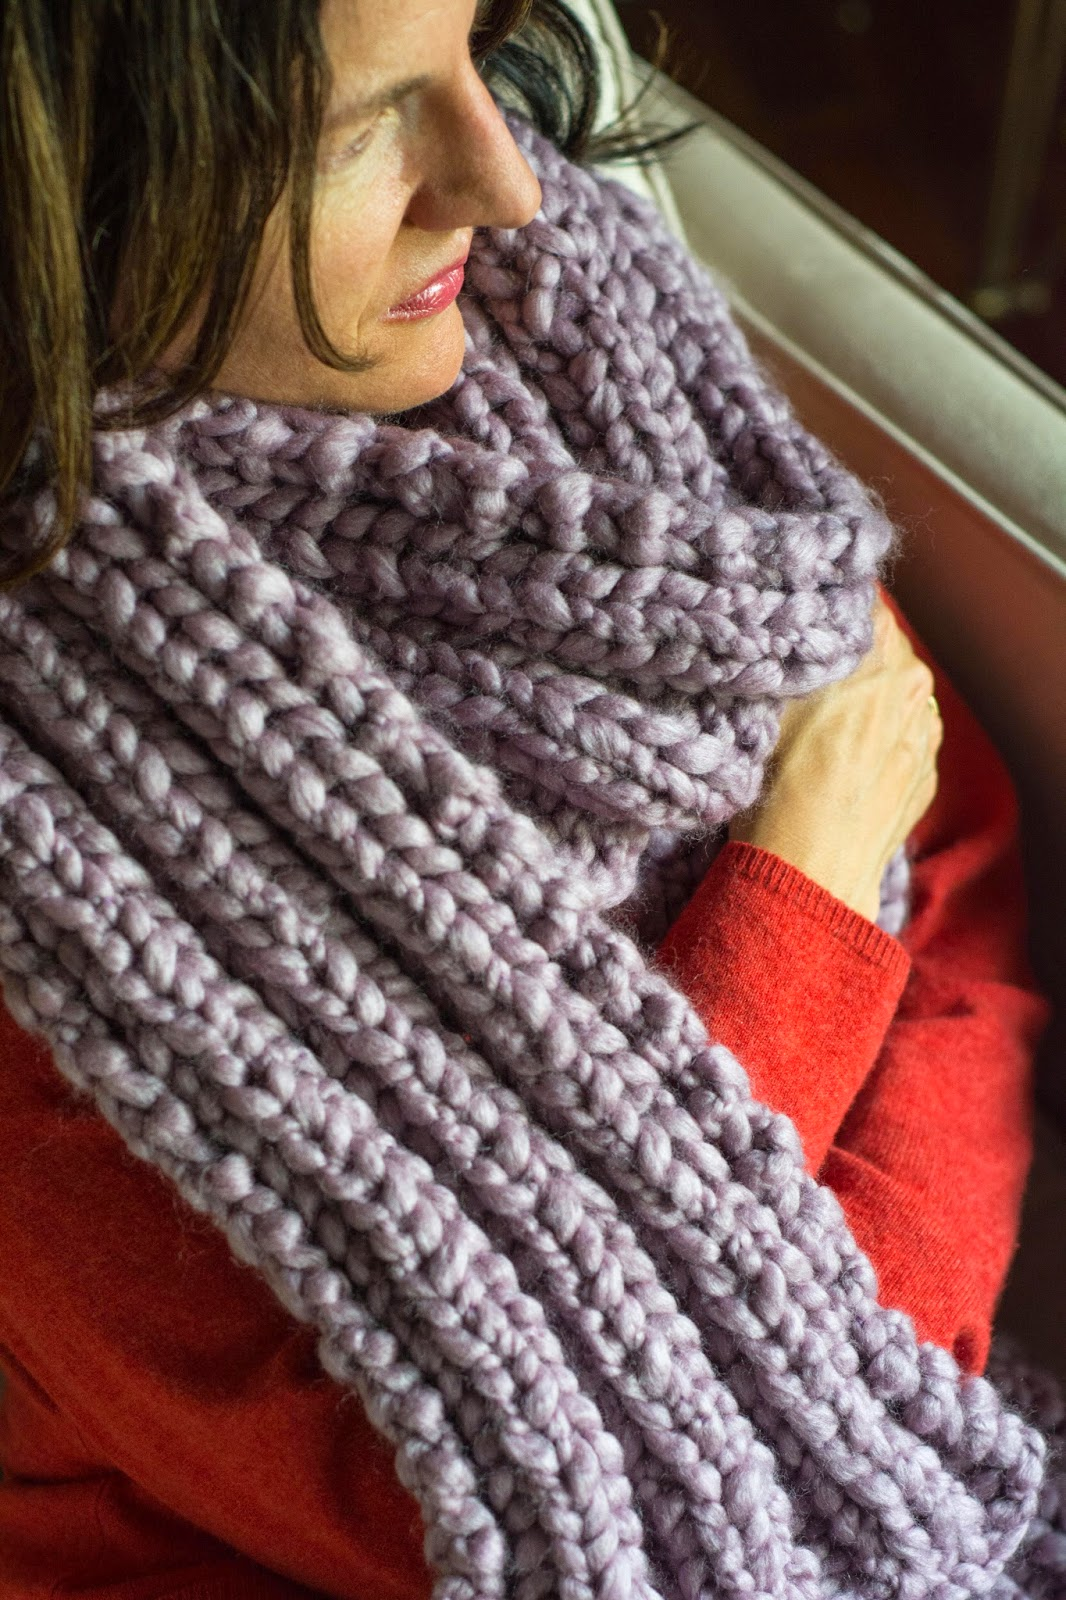 Knitting Patterns Ribbed Scarf : Aesthetic Nest: Knitting: Ribbed Knit Maxi Scarf in Pastel ...